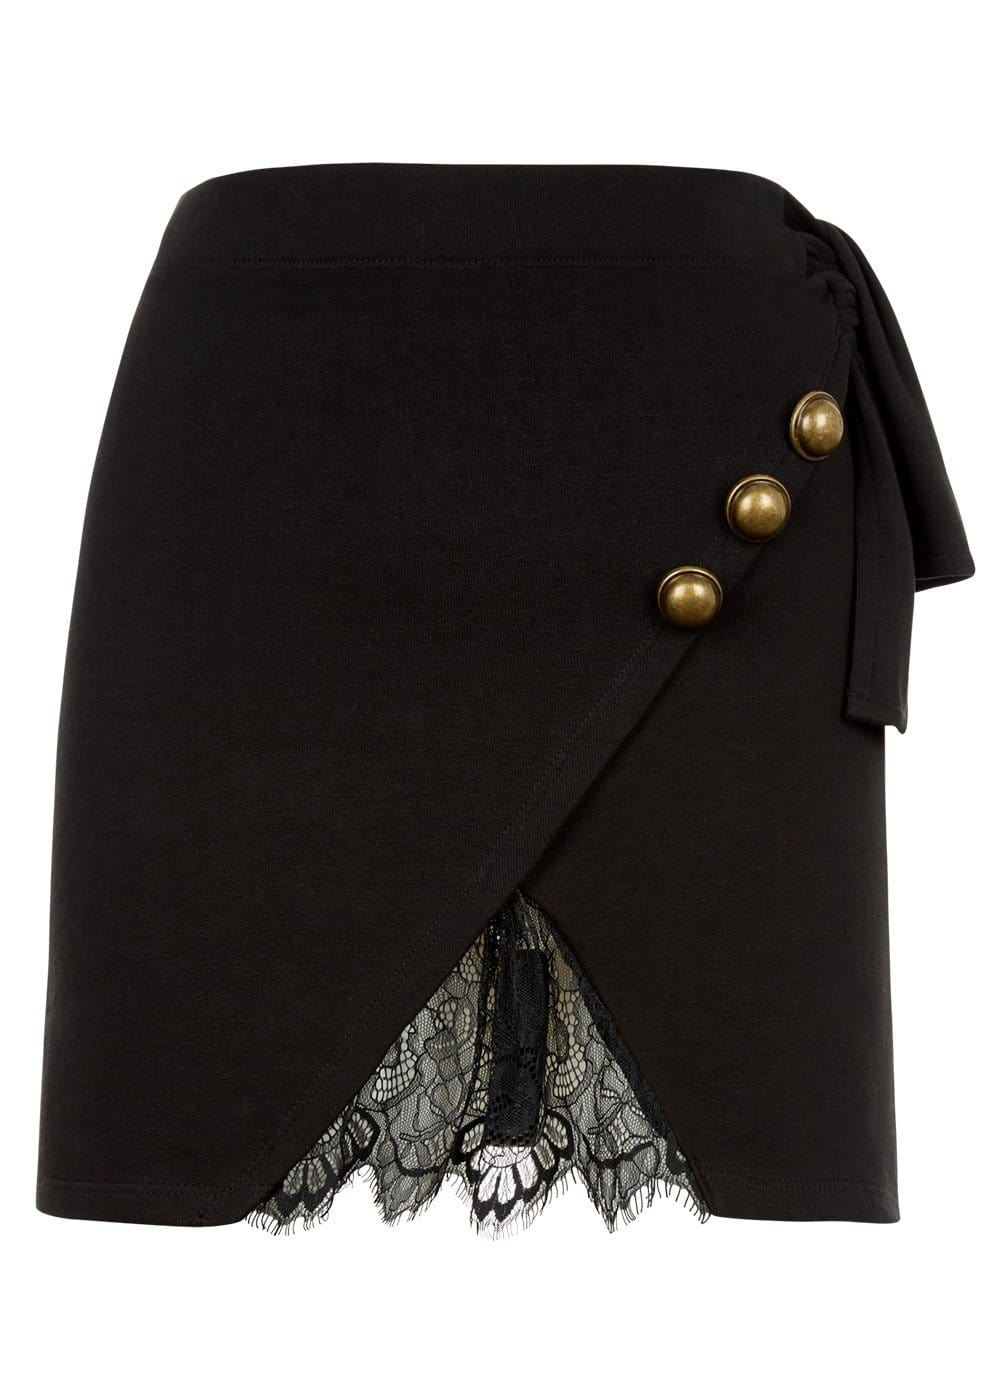 Girls Black Mini Skirt With Buttons And Lace Insert - Front